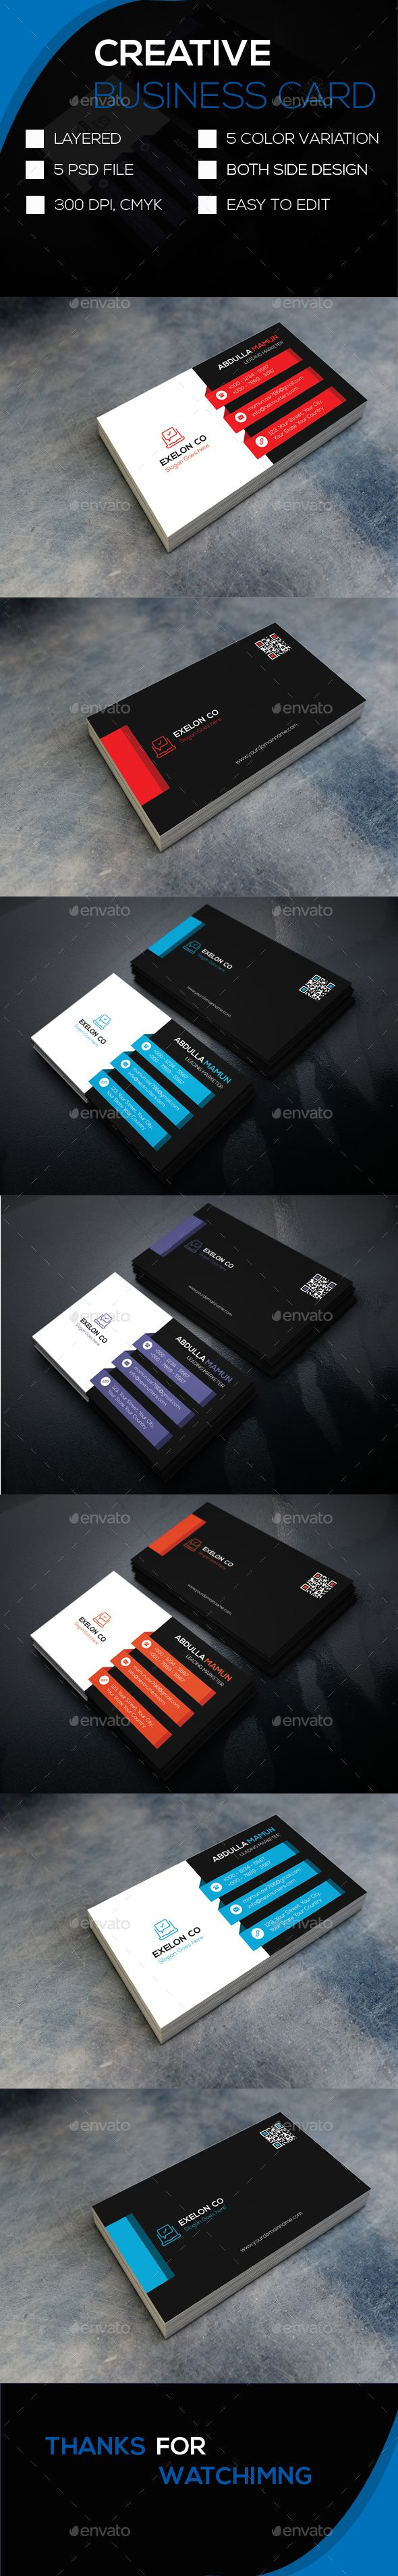 The 505 best business card images on pinterest business card buy creative business card by abdullamamun on graphicriver file information print ready fully editable print size card size with bleed 300 dpi reheart Image collections